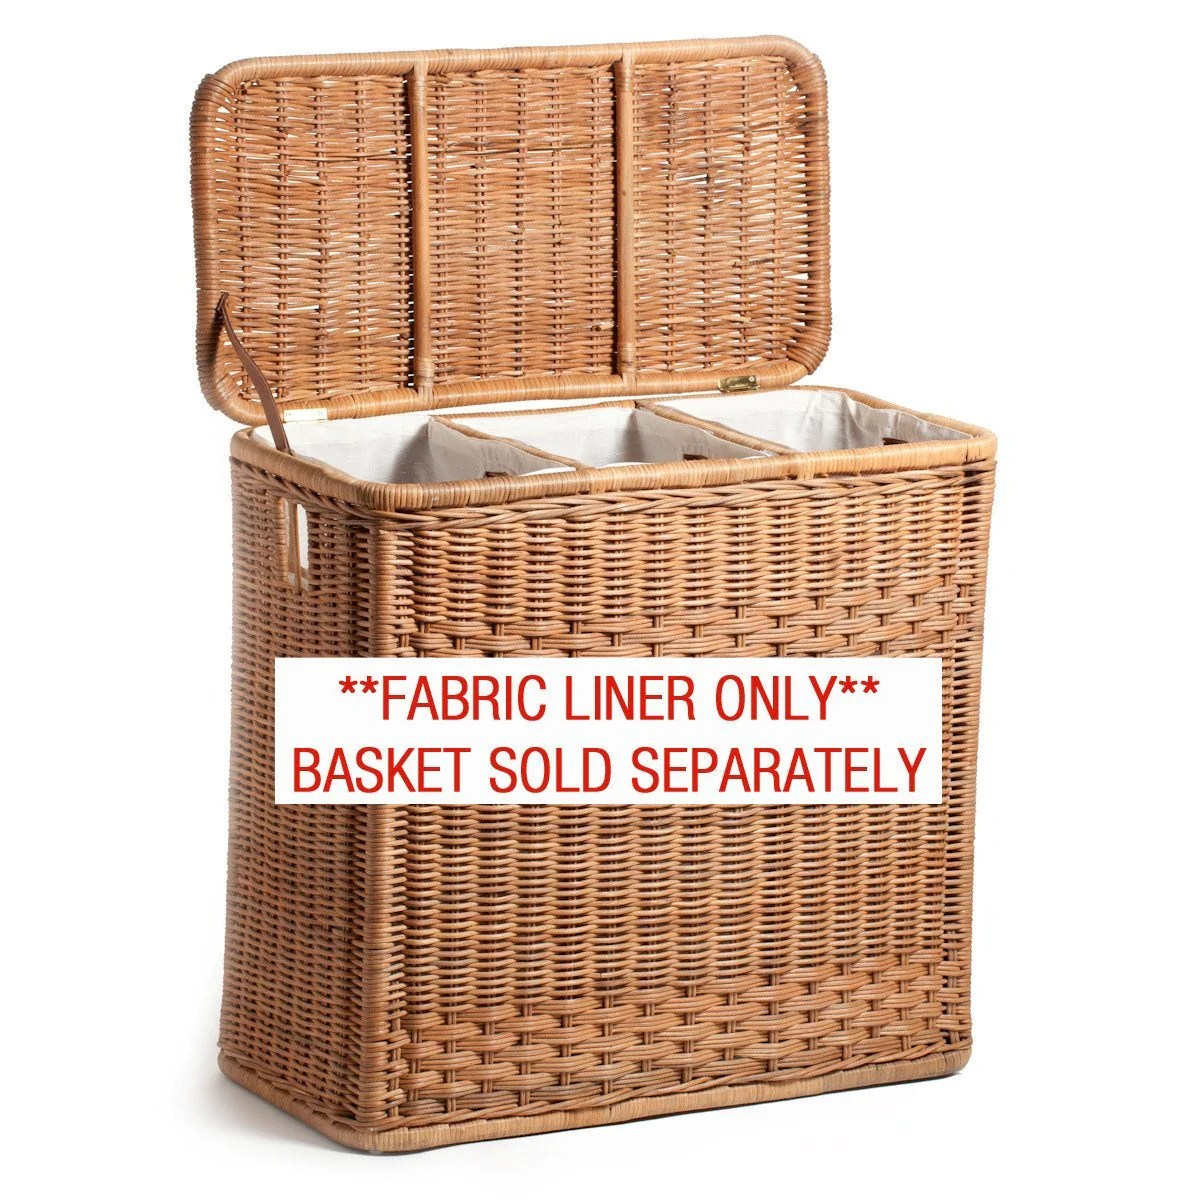 Laundry Basket Three Compartments Fabric Liner For 3 Compartment Wicker Laundry Hamper The